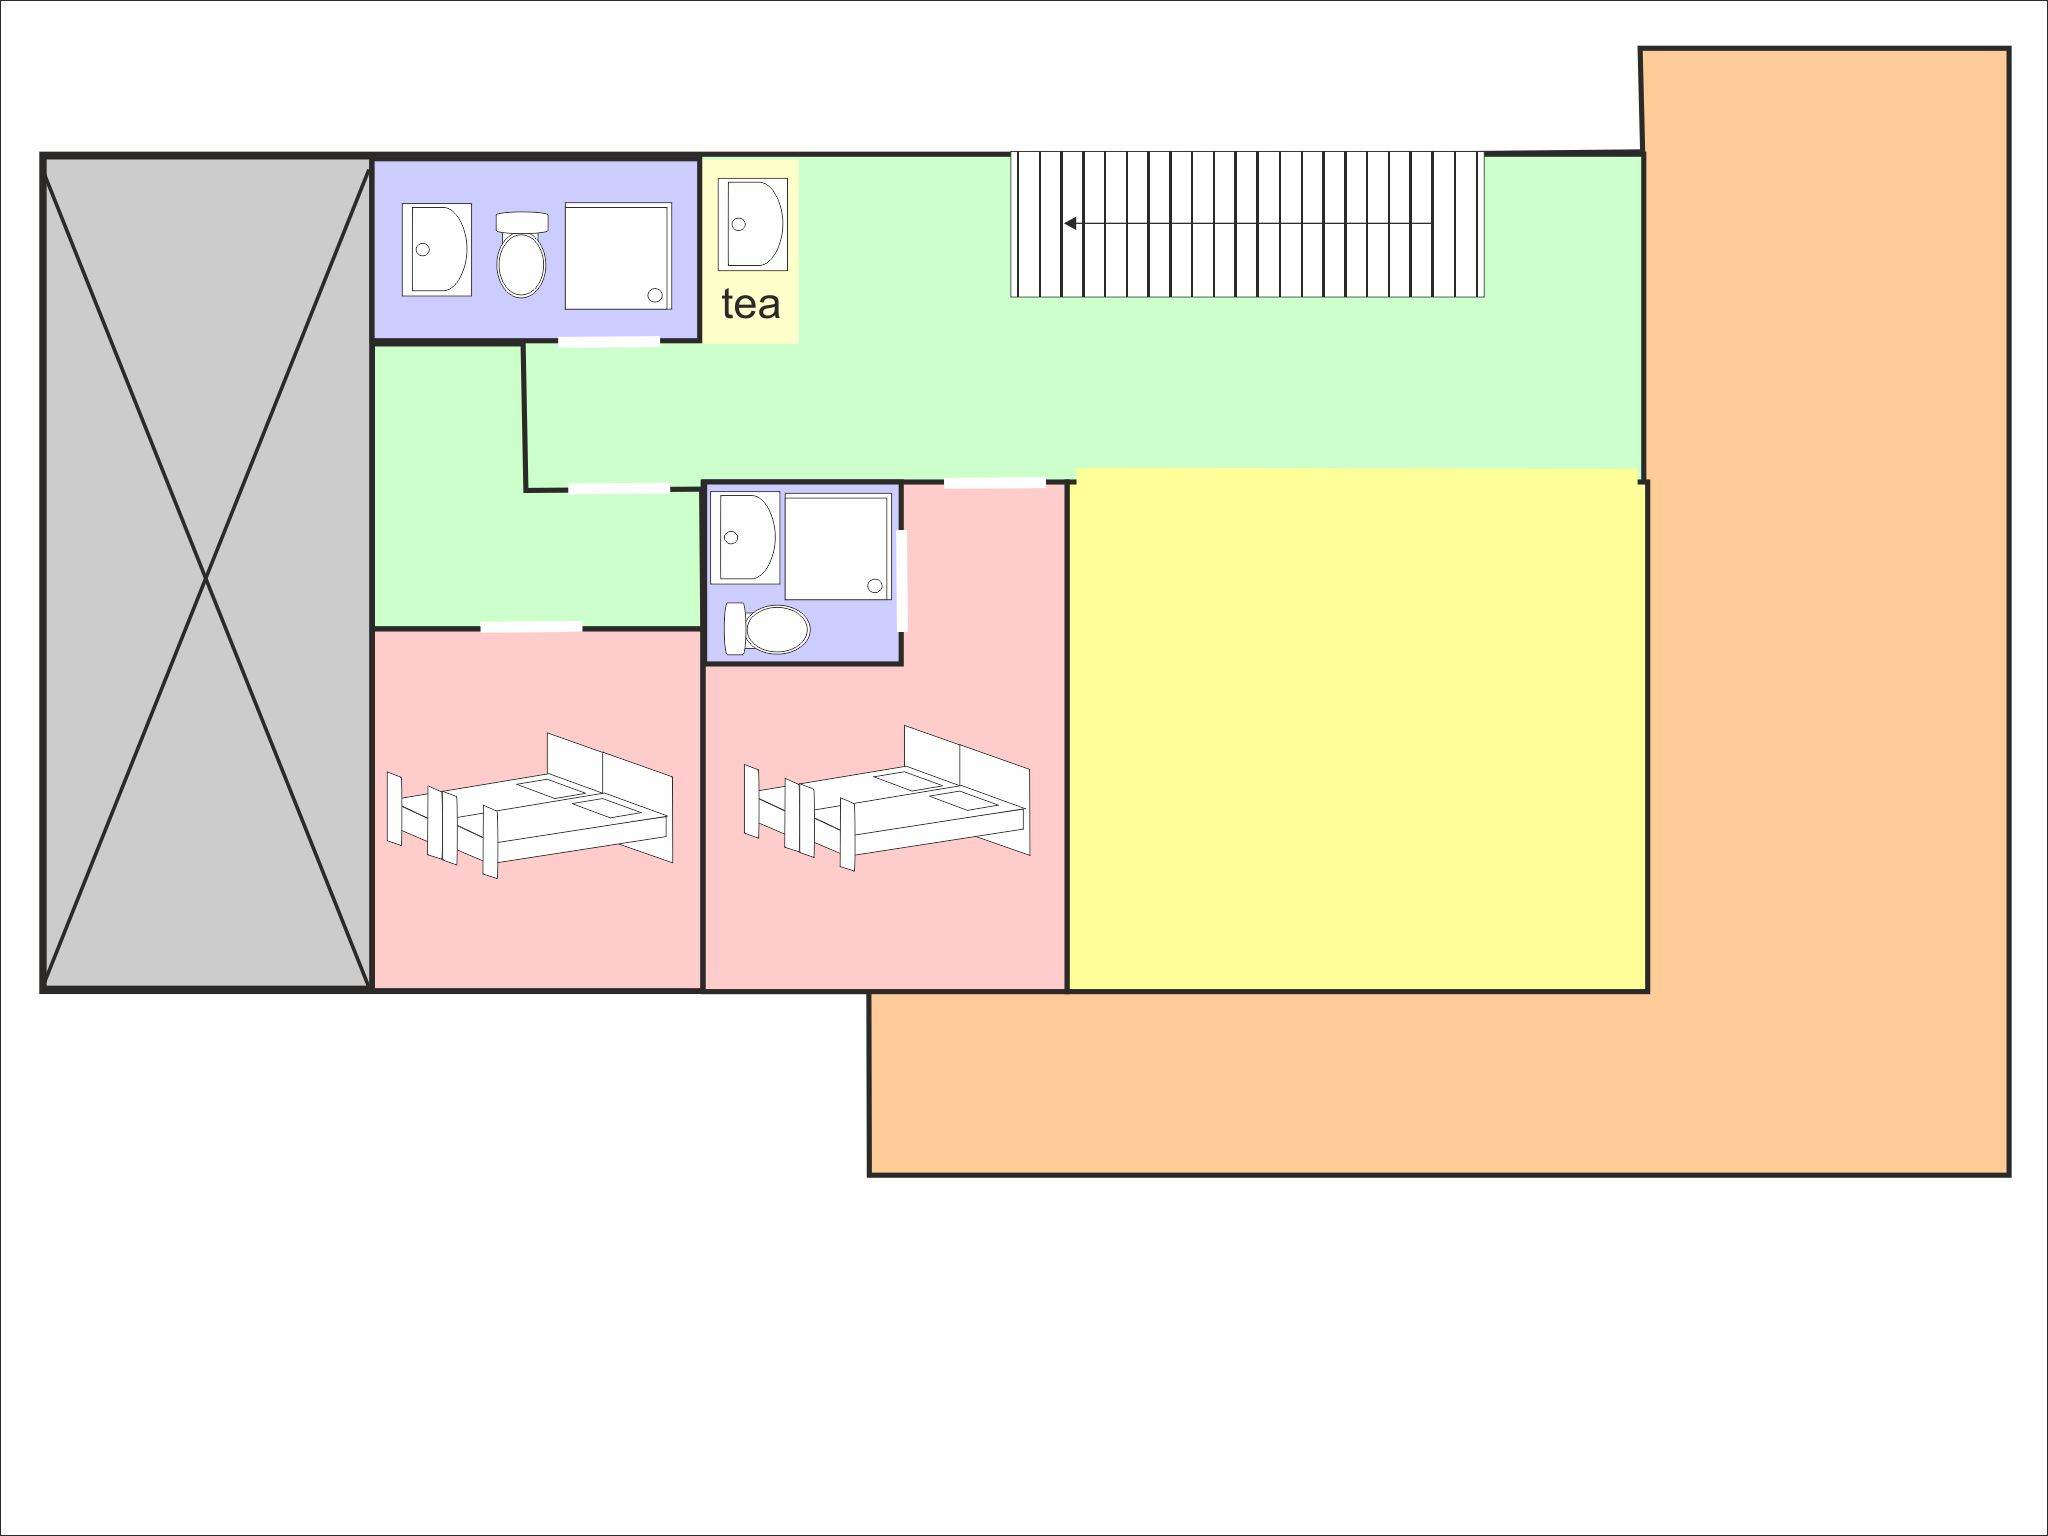 Chalet Olympe - floor plan - level 2